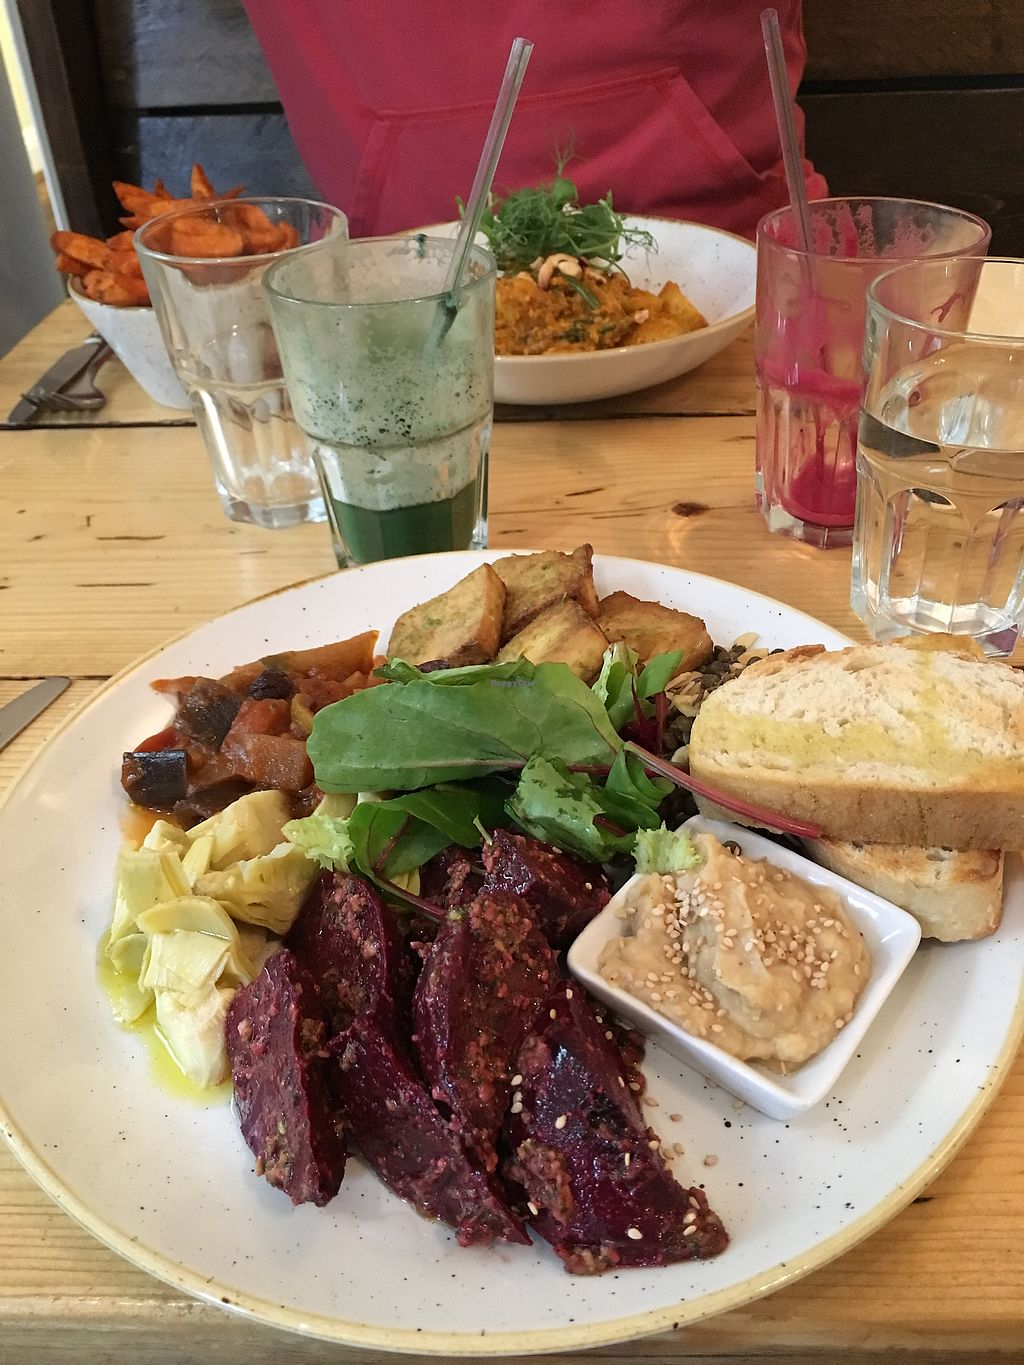 "Photo of The Green Rocket Cafe  by <a href=""/members/profile/FannyBarrier"">FannyBarrier</a> <br/>Italian tasting plate for one <br/> July 29, 2017  - <a href='/contact/abuse/image/36987/286100'>Report</a>"